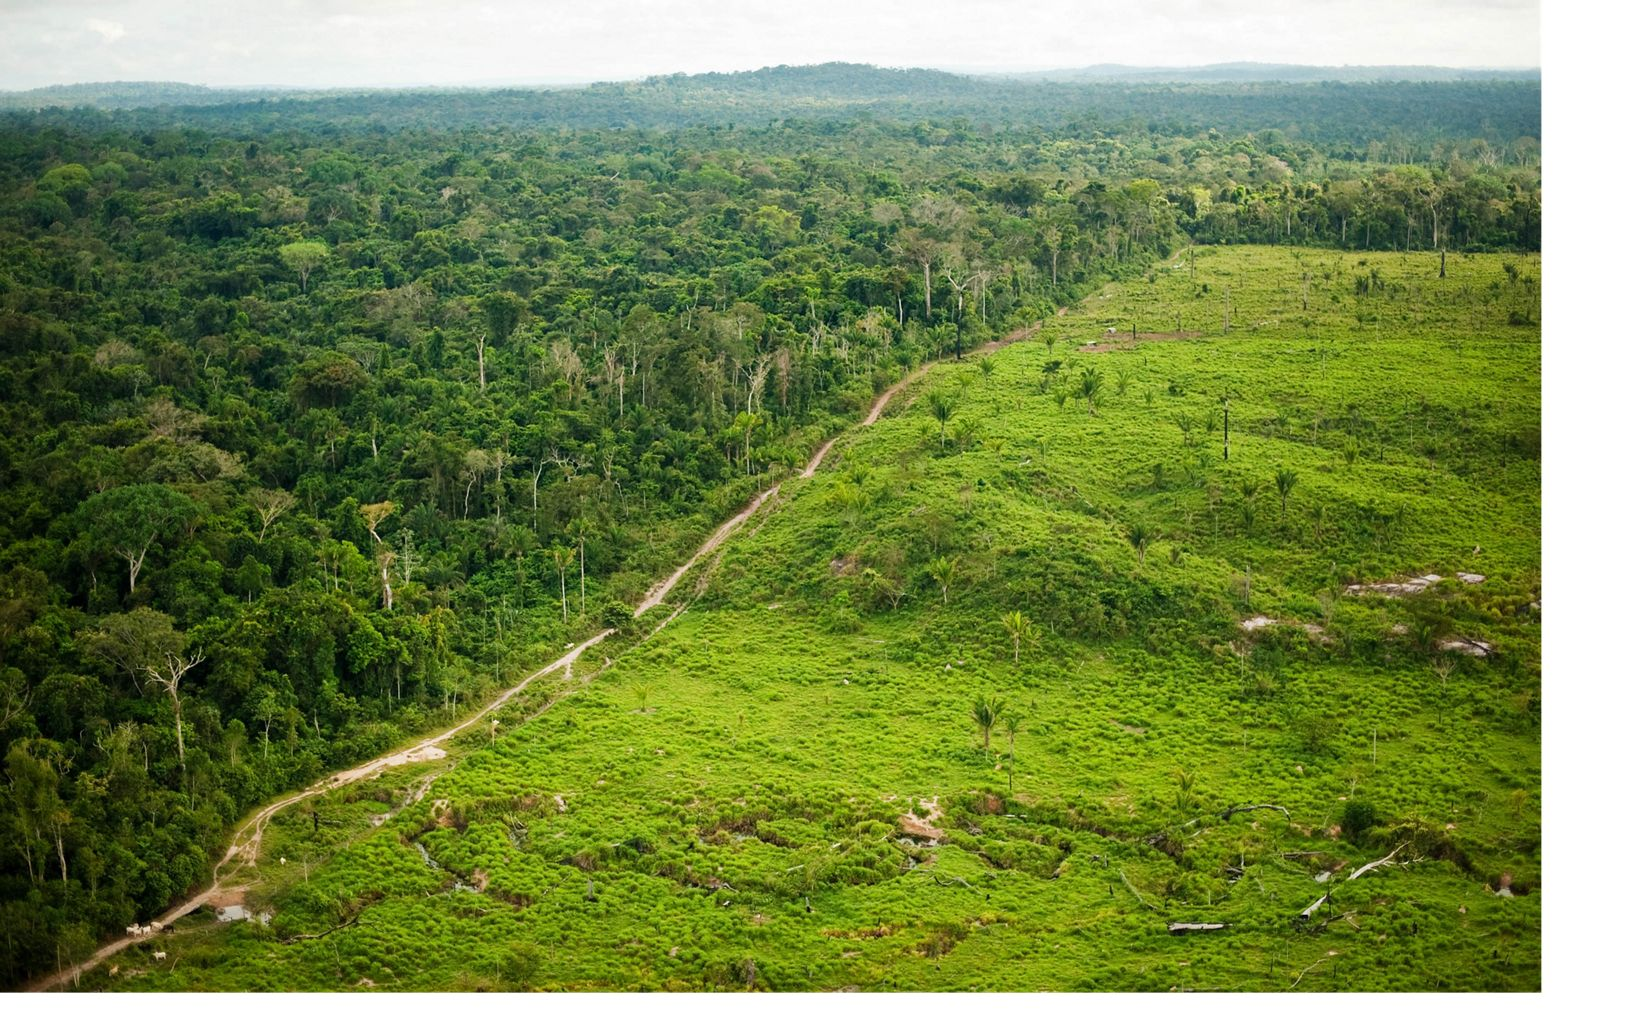 An aerial view showing deforestation for cattle ranching at São Félix do Xingu,